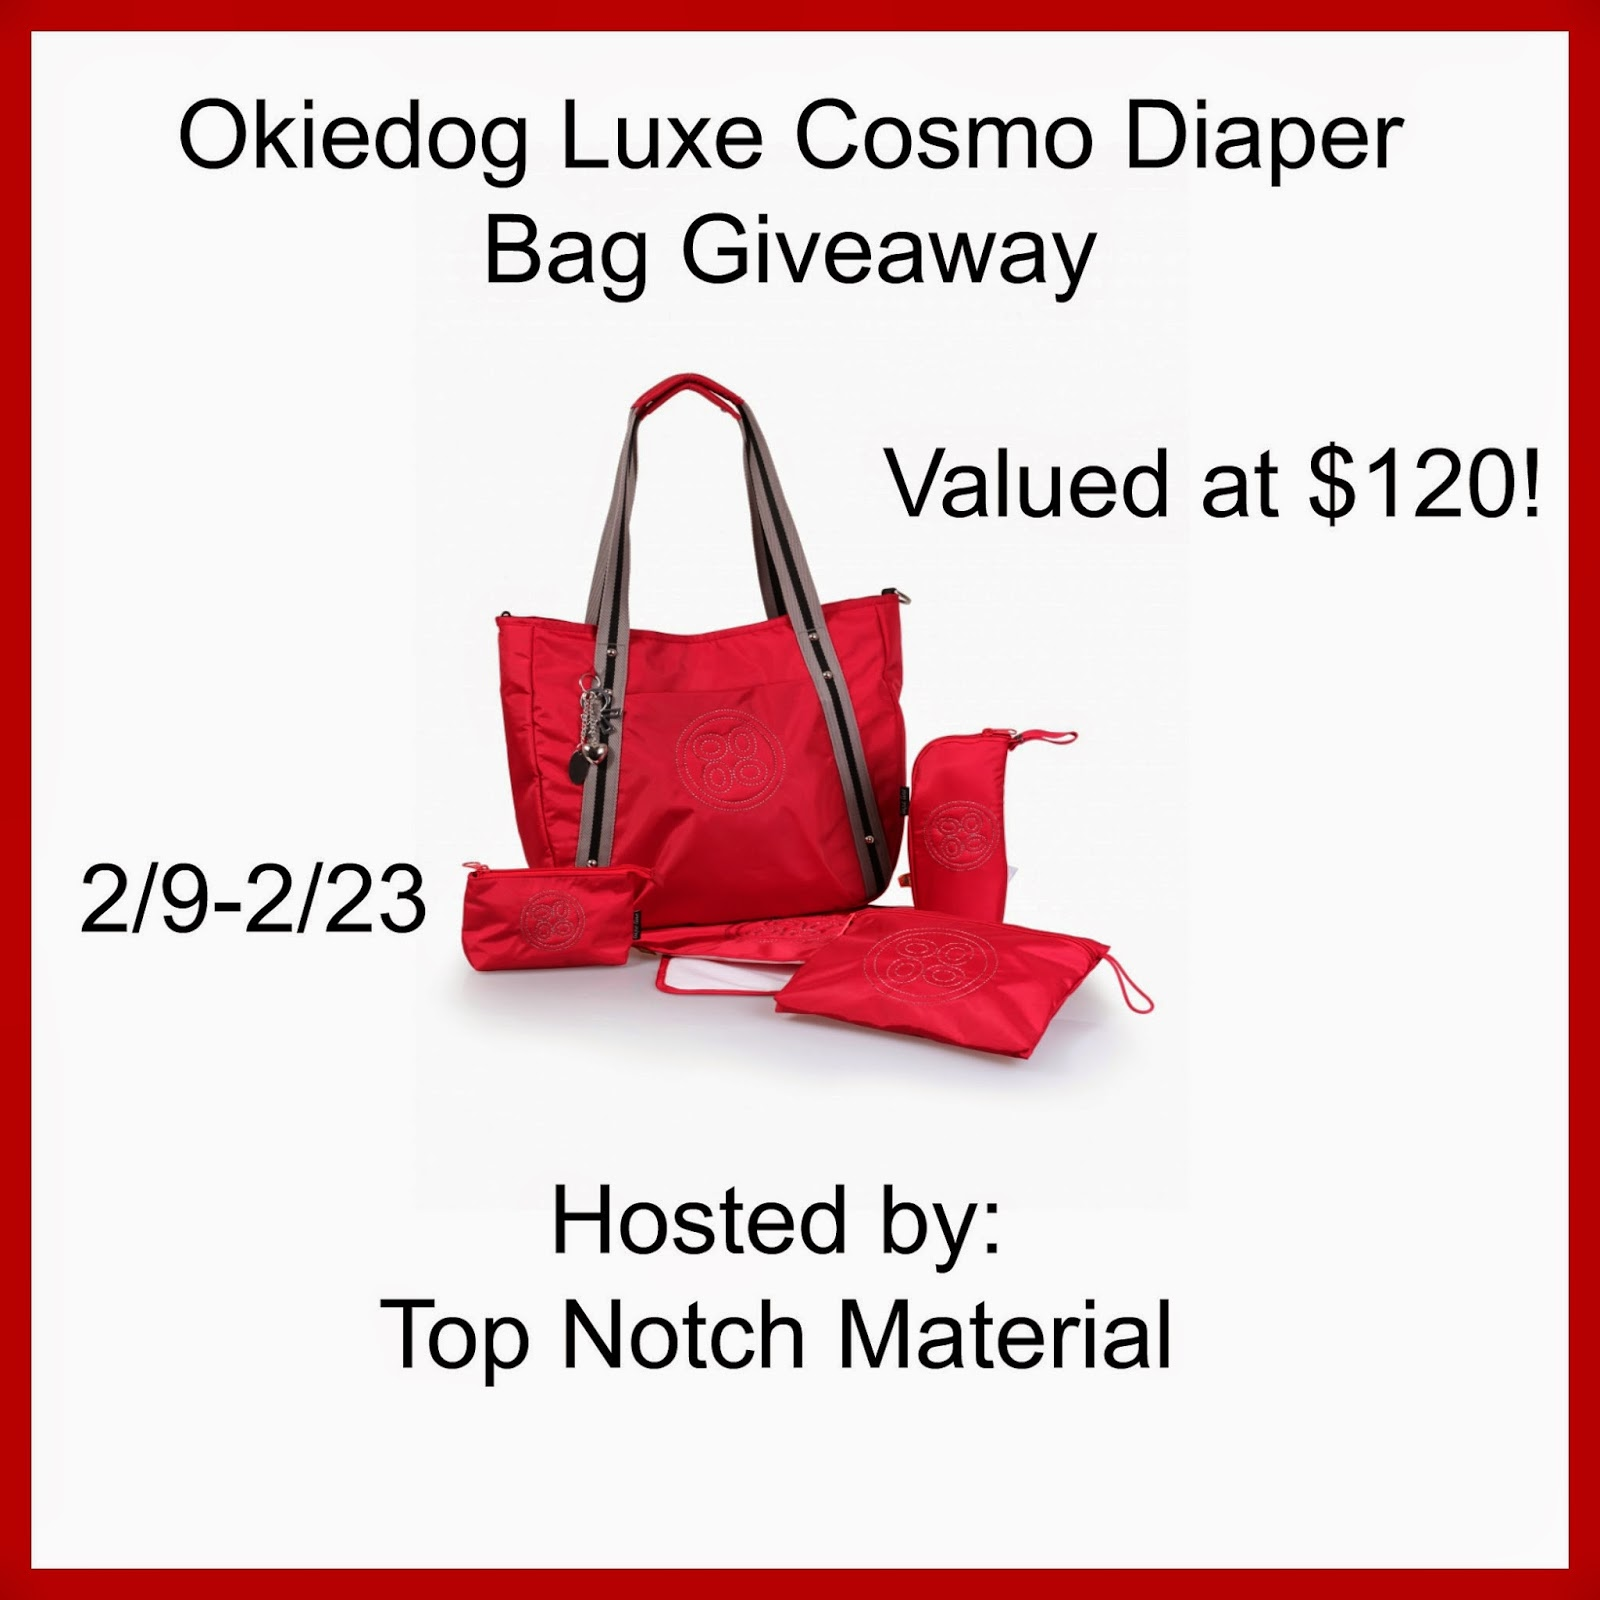 Top Notch Material Okiedog Luxe Cosmo Diaper Bag Sumo Dahoma Beige Monday February 9 2015